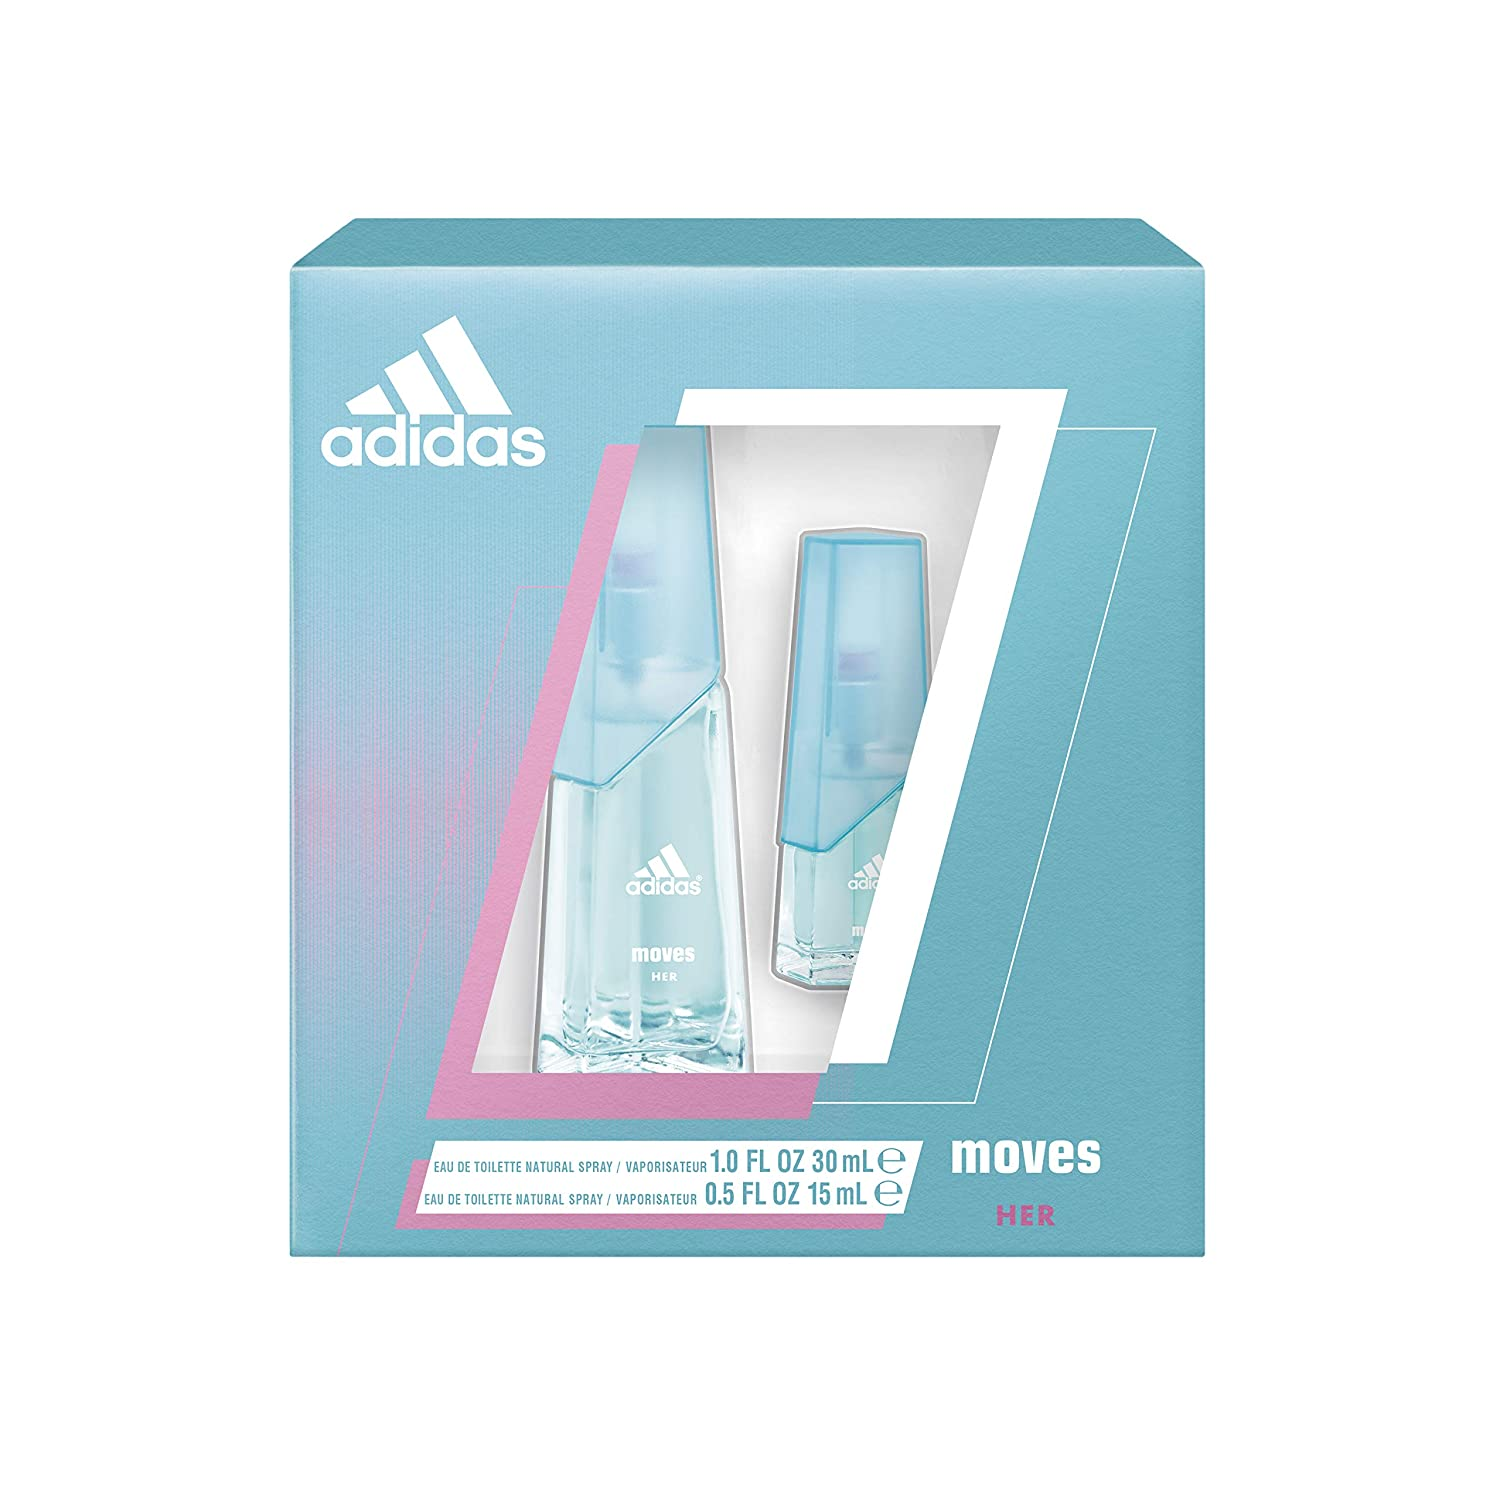 Adidas Moves for Nashville-Davidson Mall Her 2 Piece Total Value Set Ranking TOP7 Gift Retail EDT